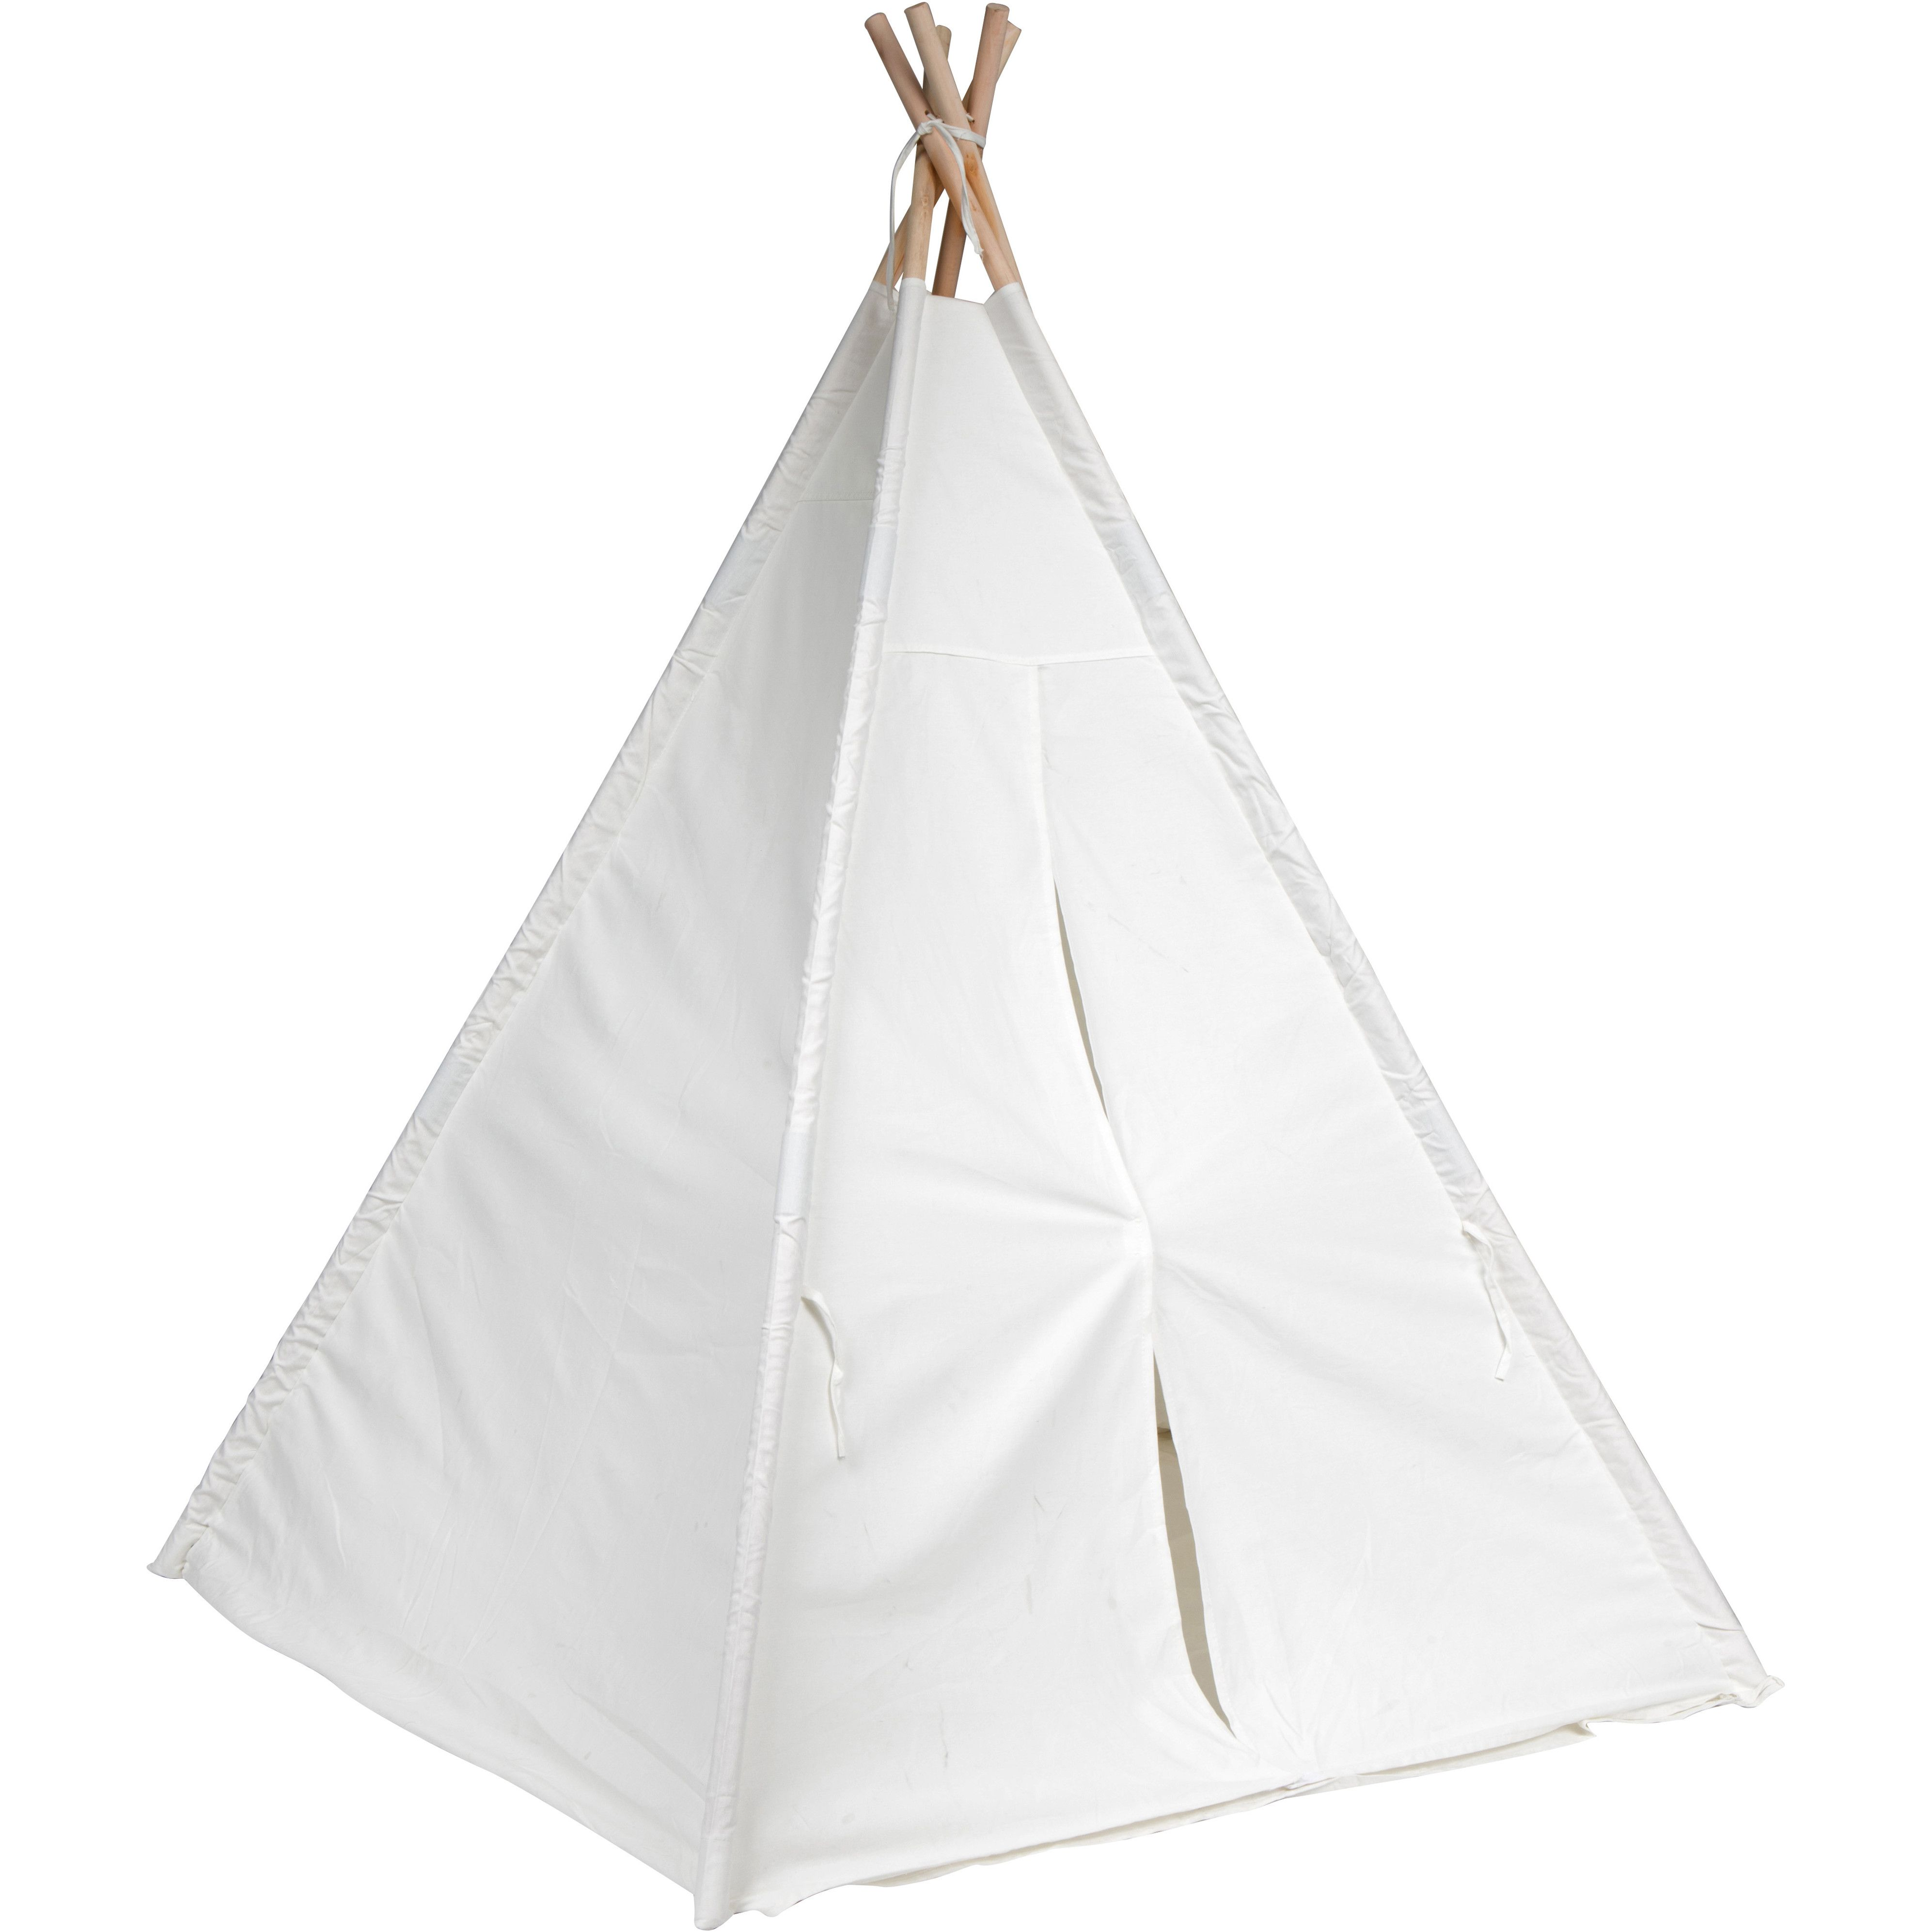 Authentic Giant Play Teepee With Carrying Bag Play Teepee Canvas Teepee Play Tent